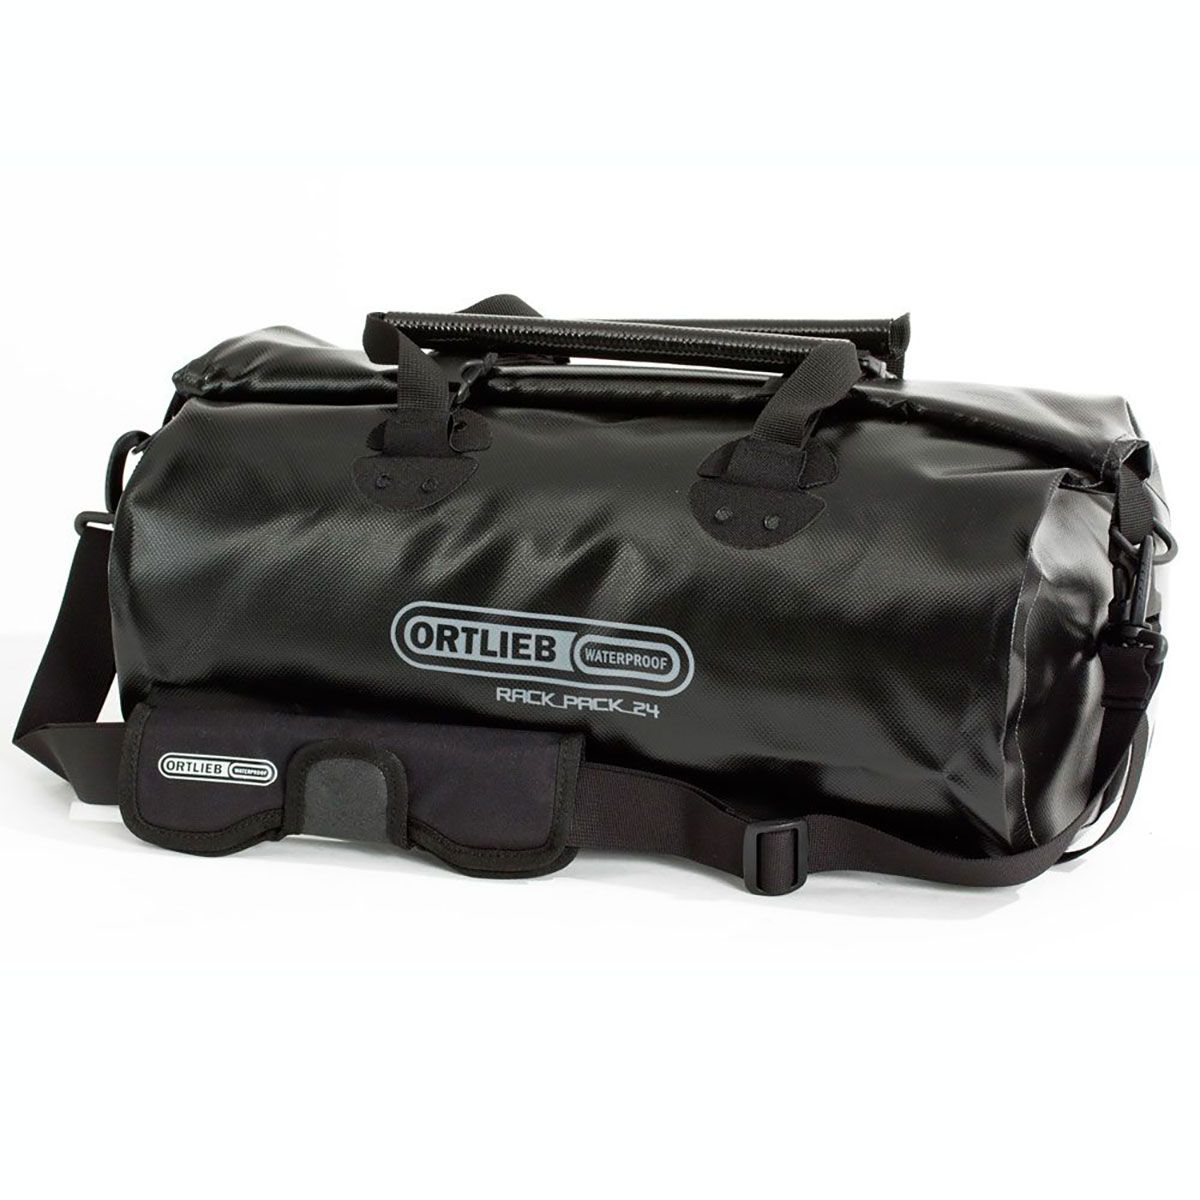 ORTLIEB S 24 l Rack-Pack travel and sports bag | item_misc